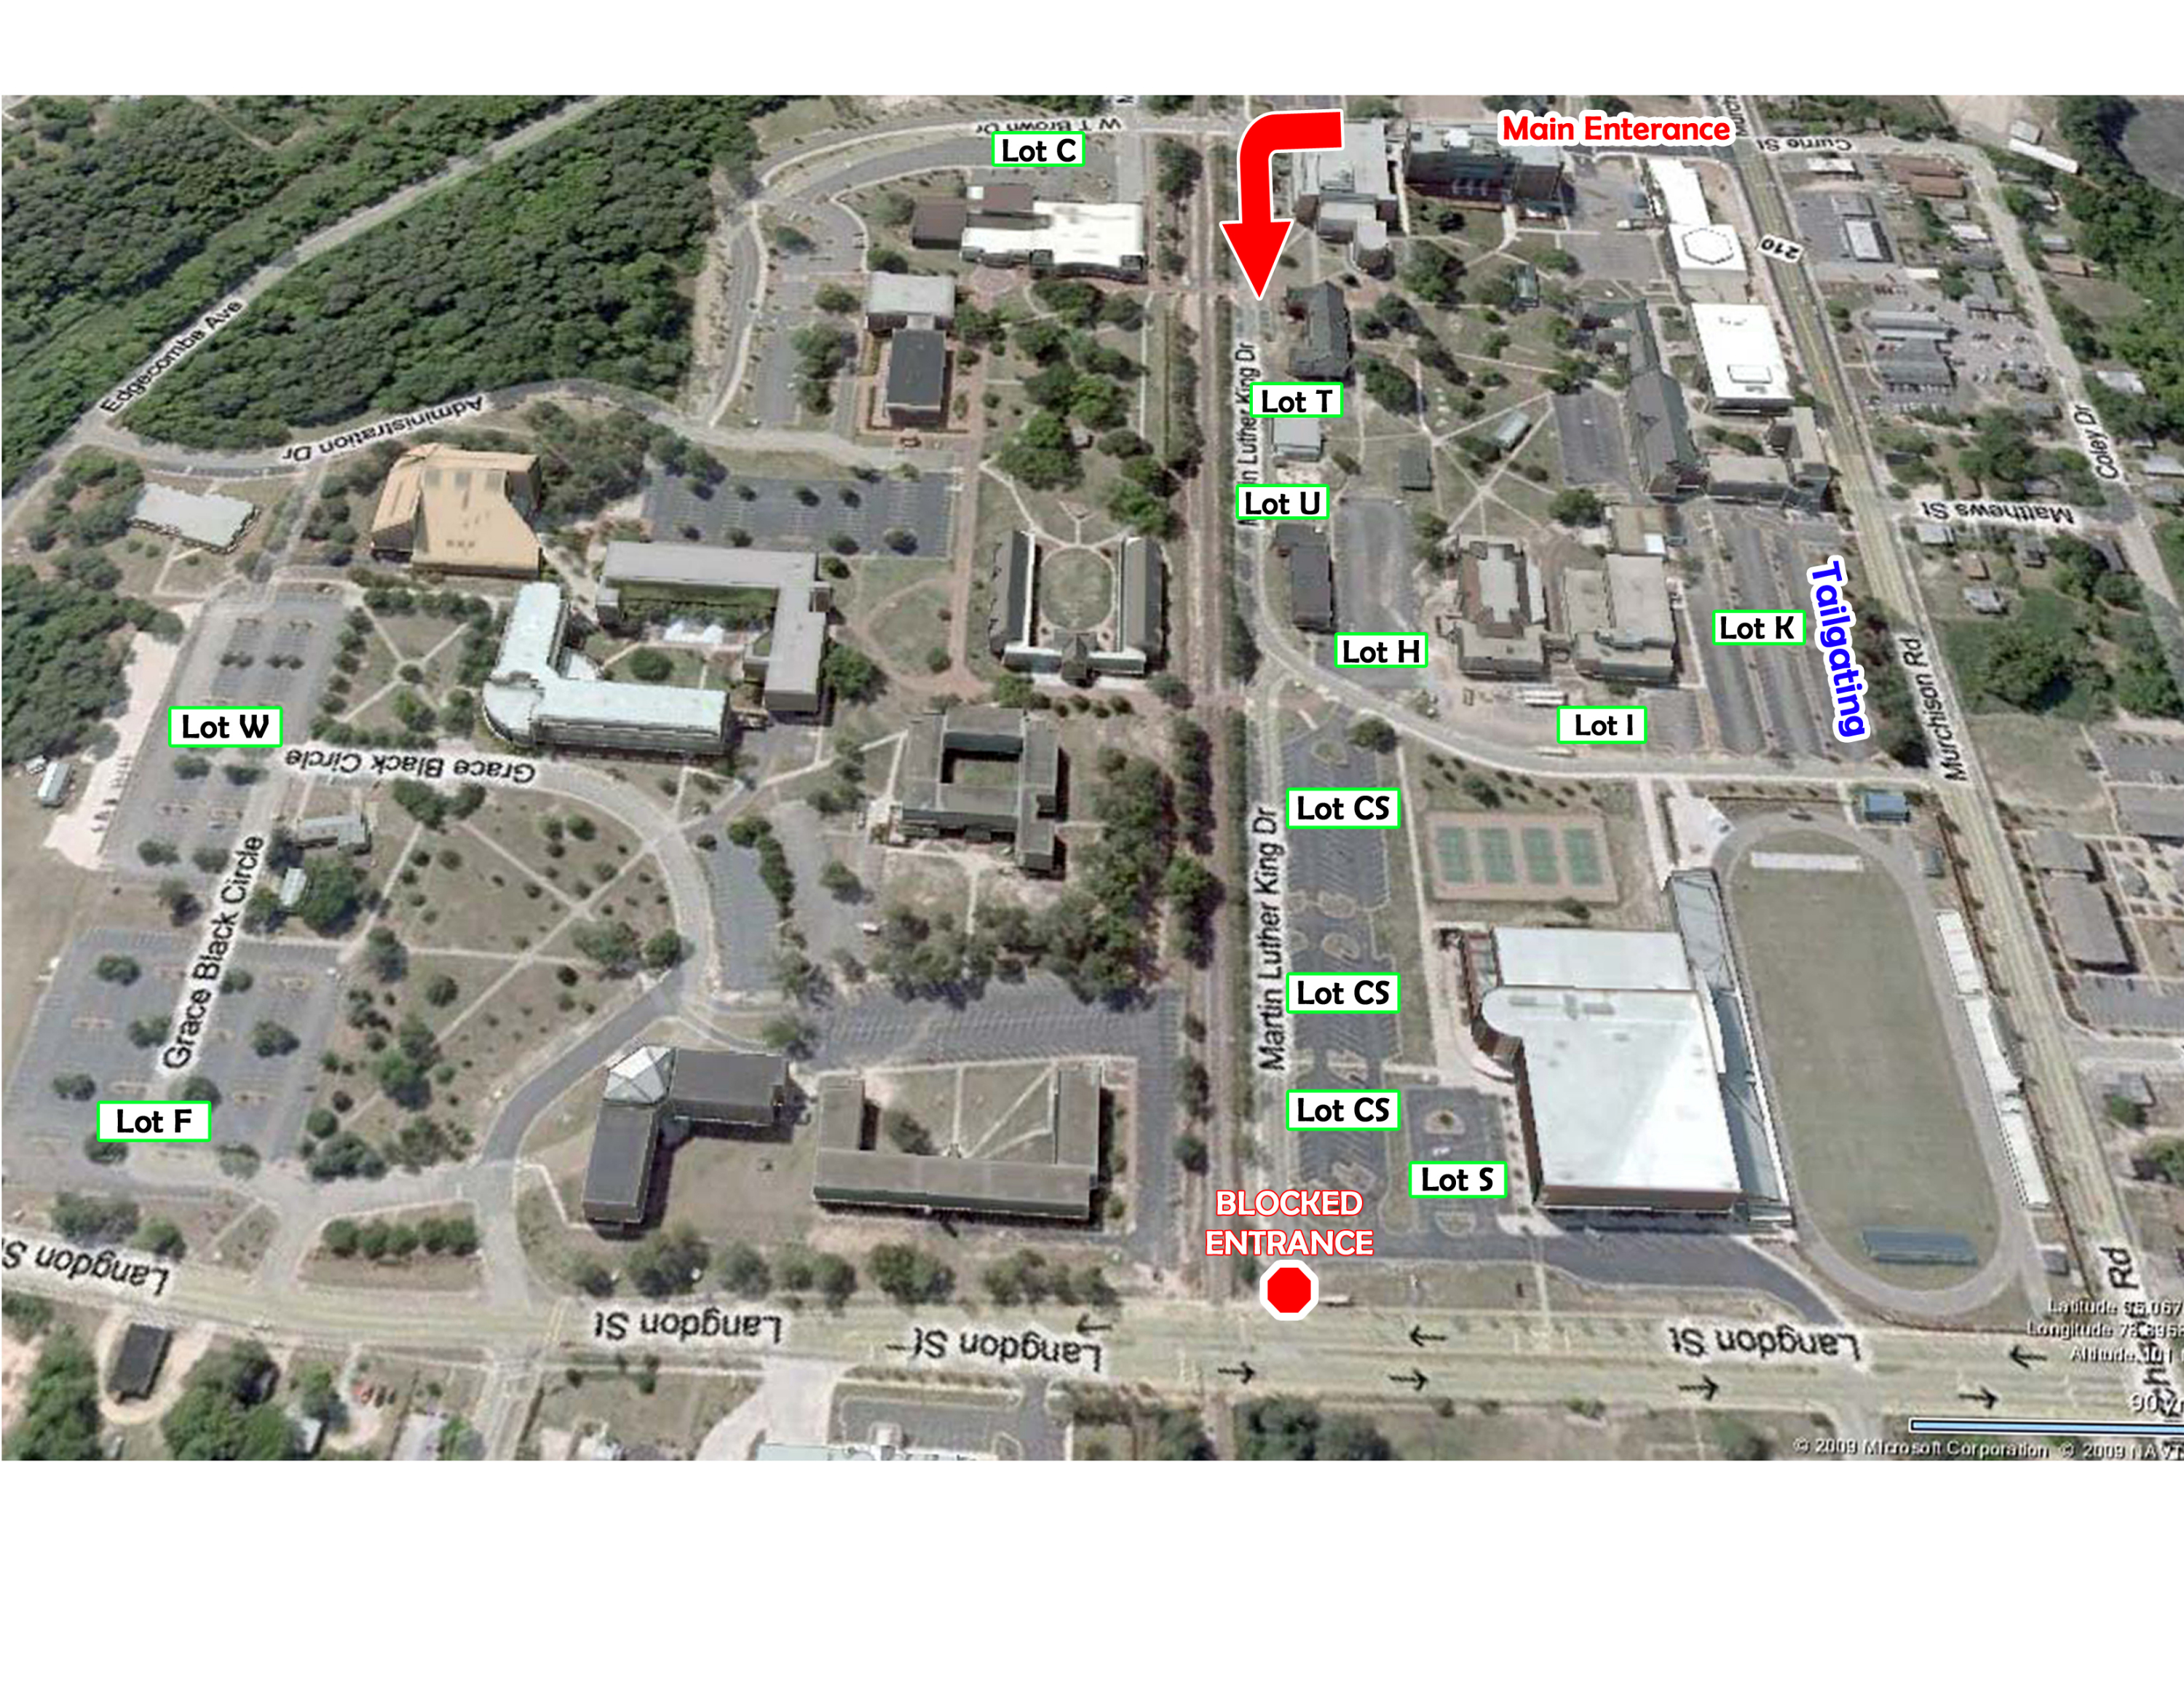 fayetteville state campus map Directions Fayetteville State University Athletics fayetteville state campus map